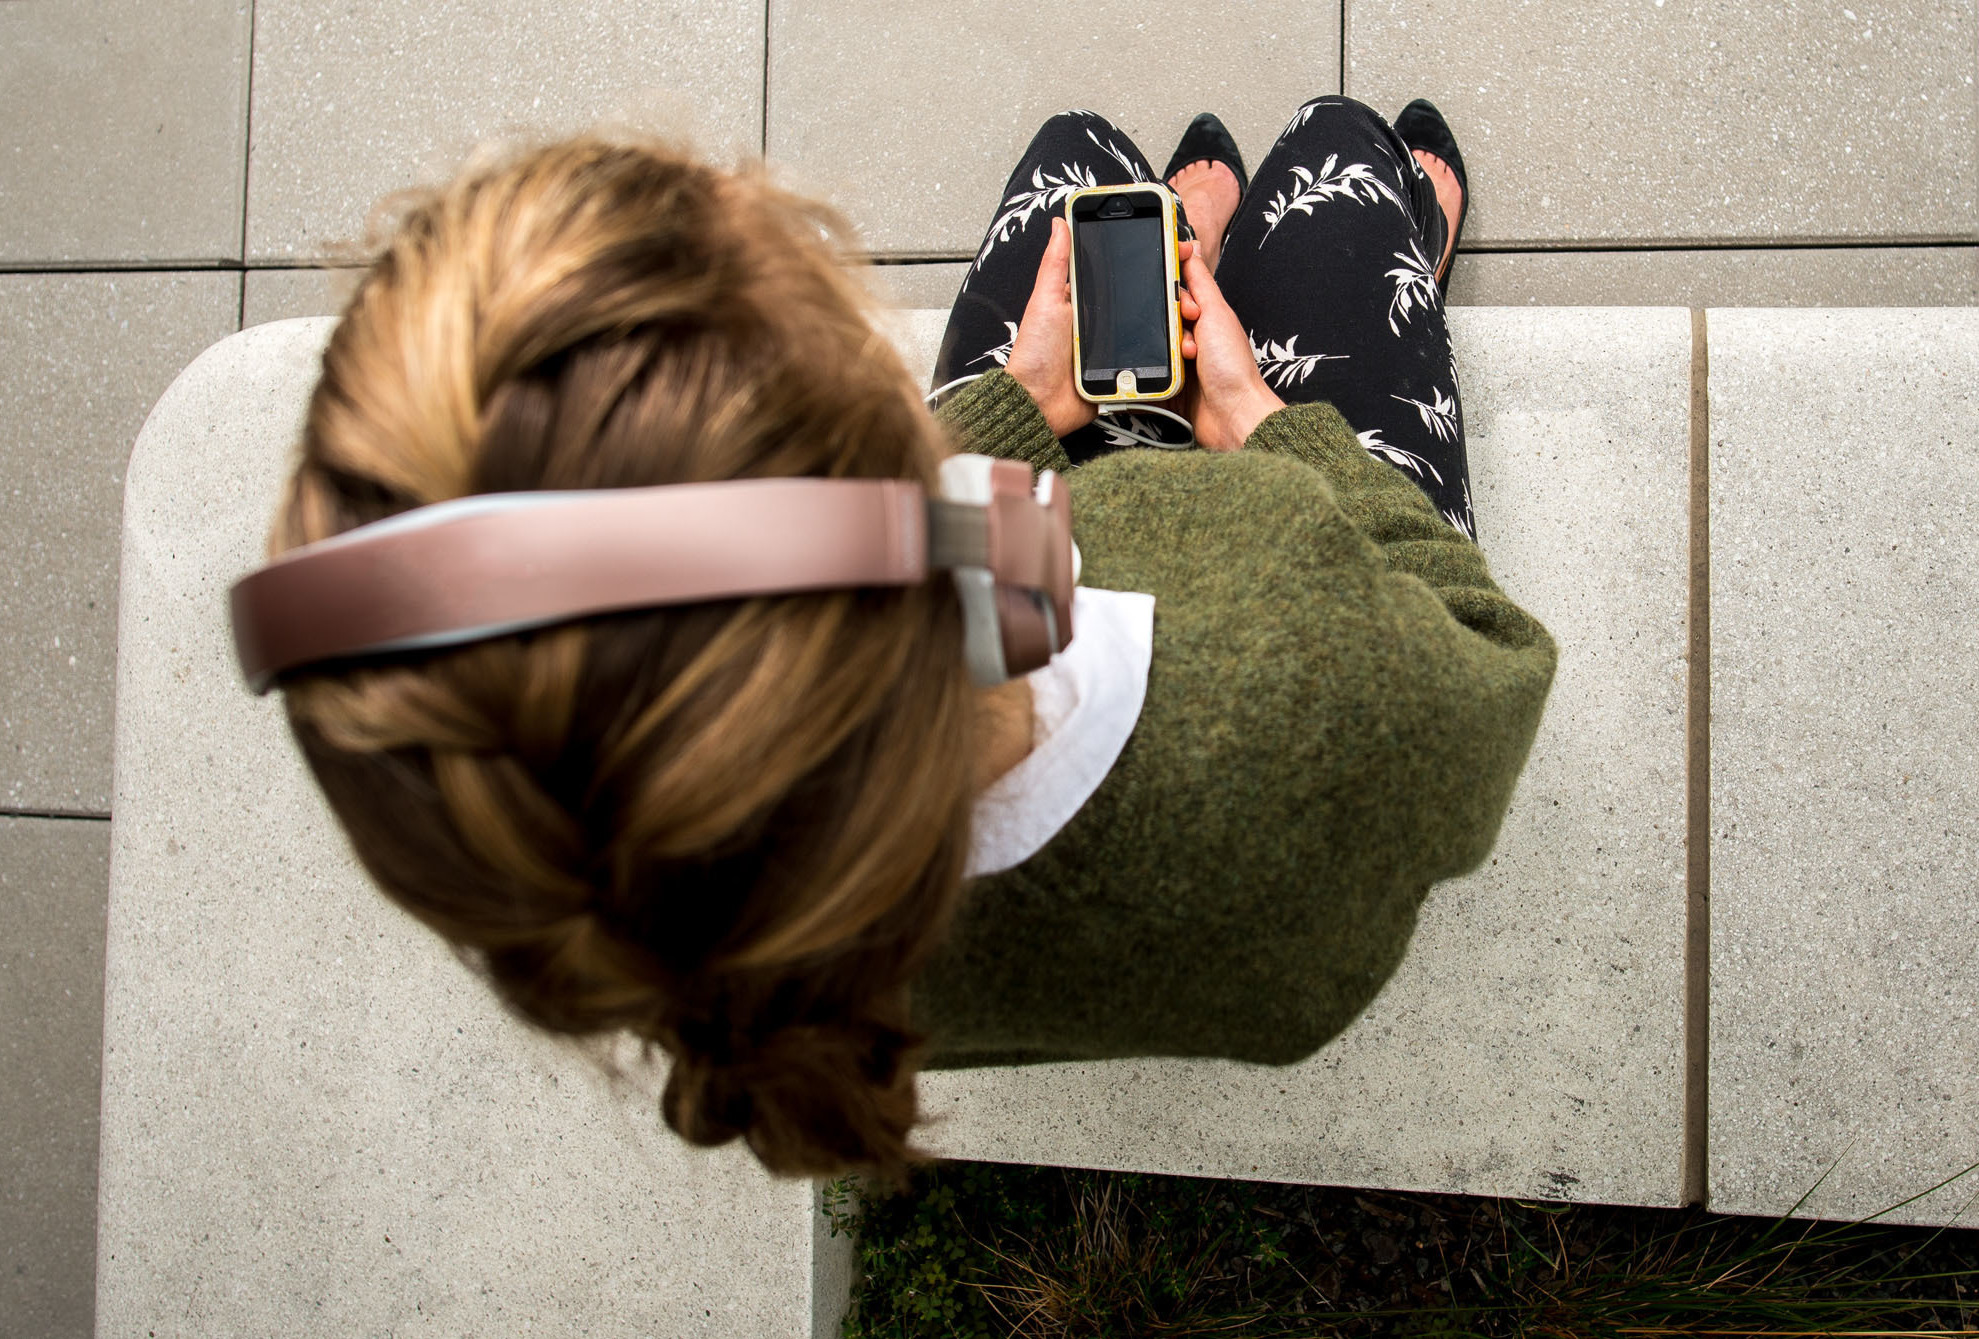 Mindfulness Apps Aim To Help People Disconnect From Stress